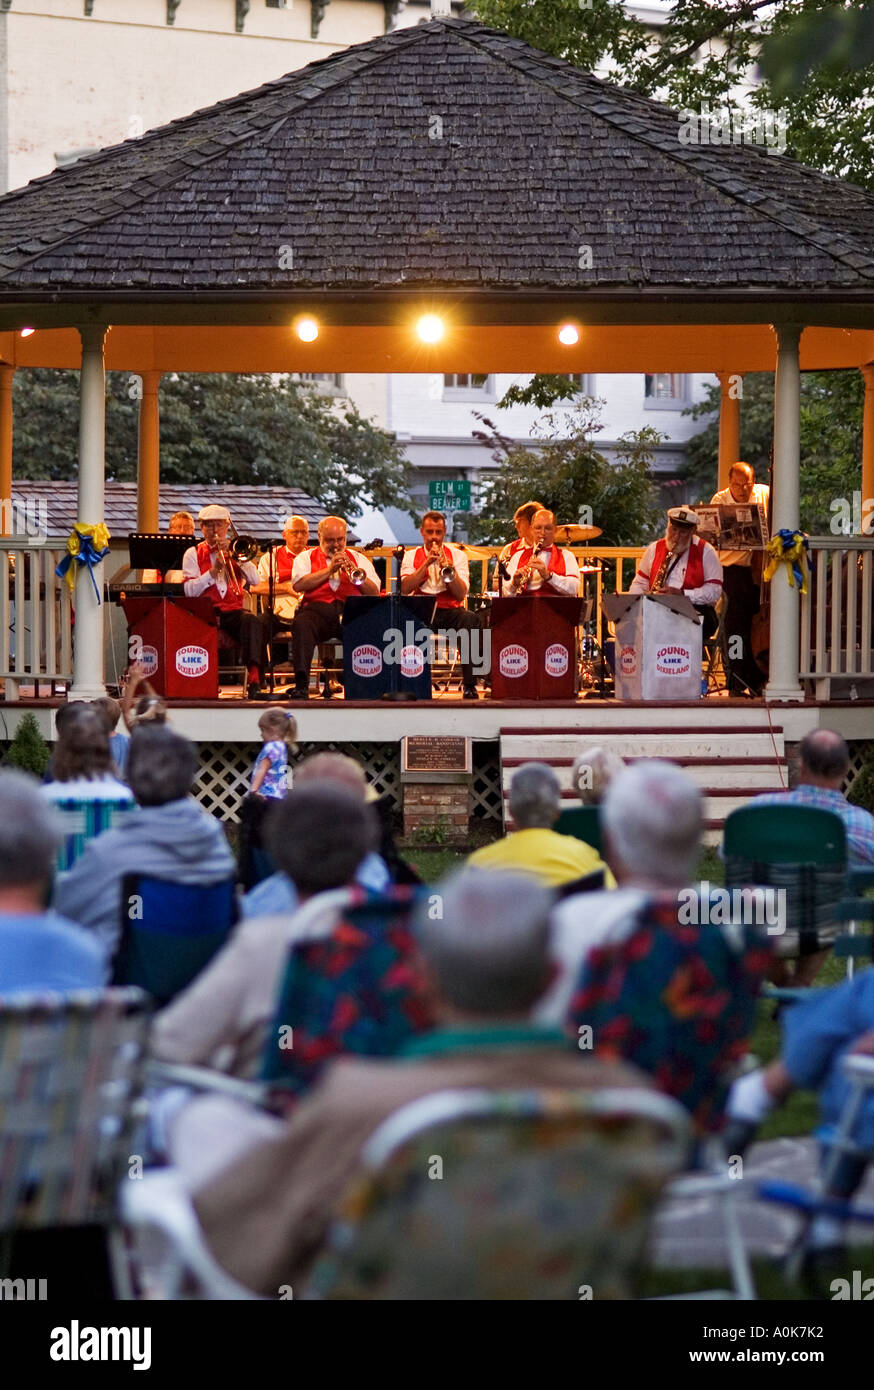 Band Playing Concert Under Gazebo In Small Town Square Corydon Indiana - Stock Image